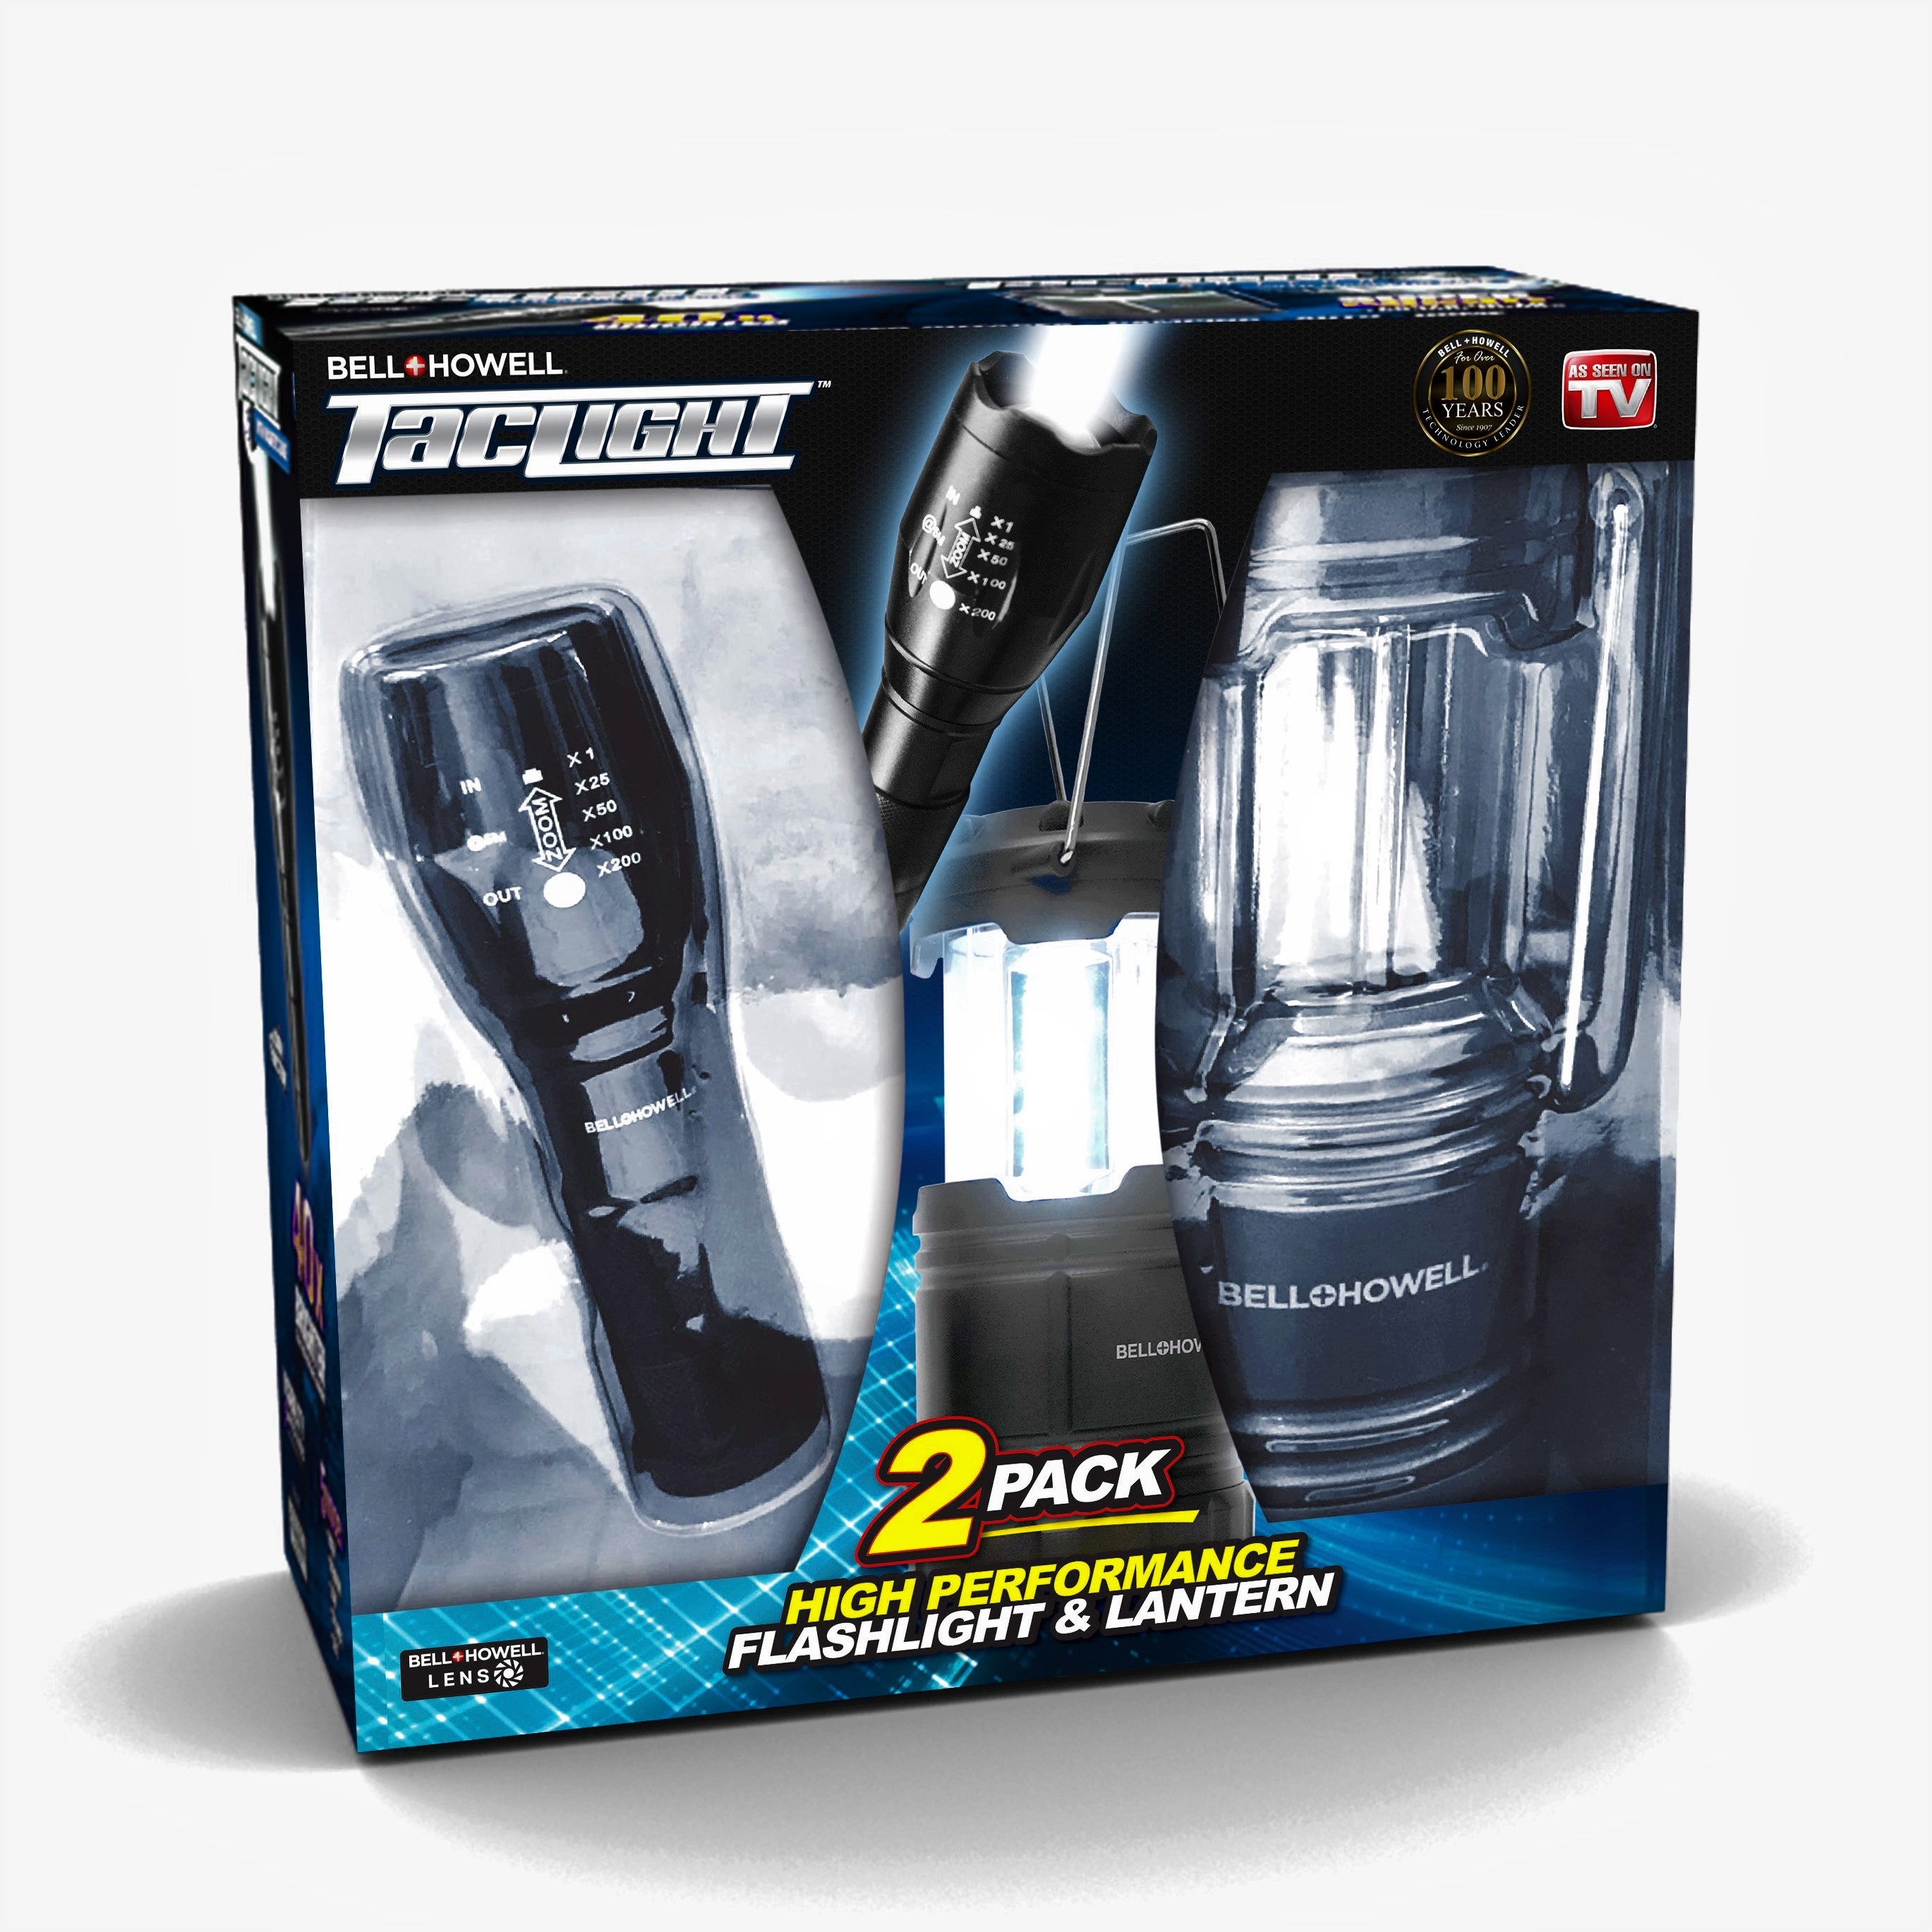 Bell + Howell Taclight Flashlight and Lantern Ultimate Camping Bundle – As Seen on TV!